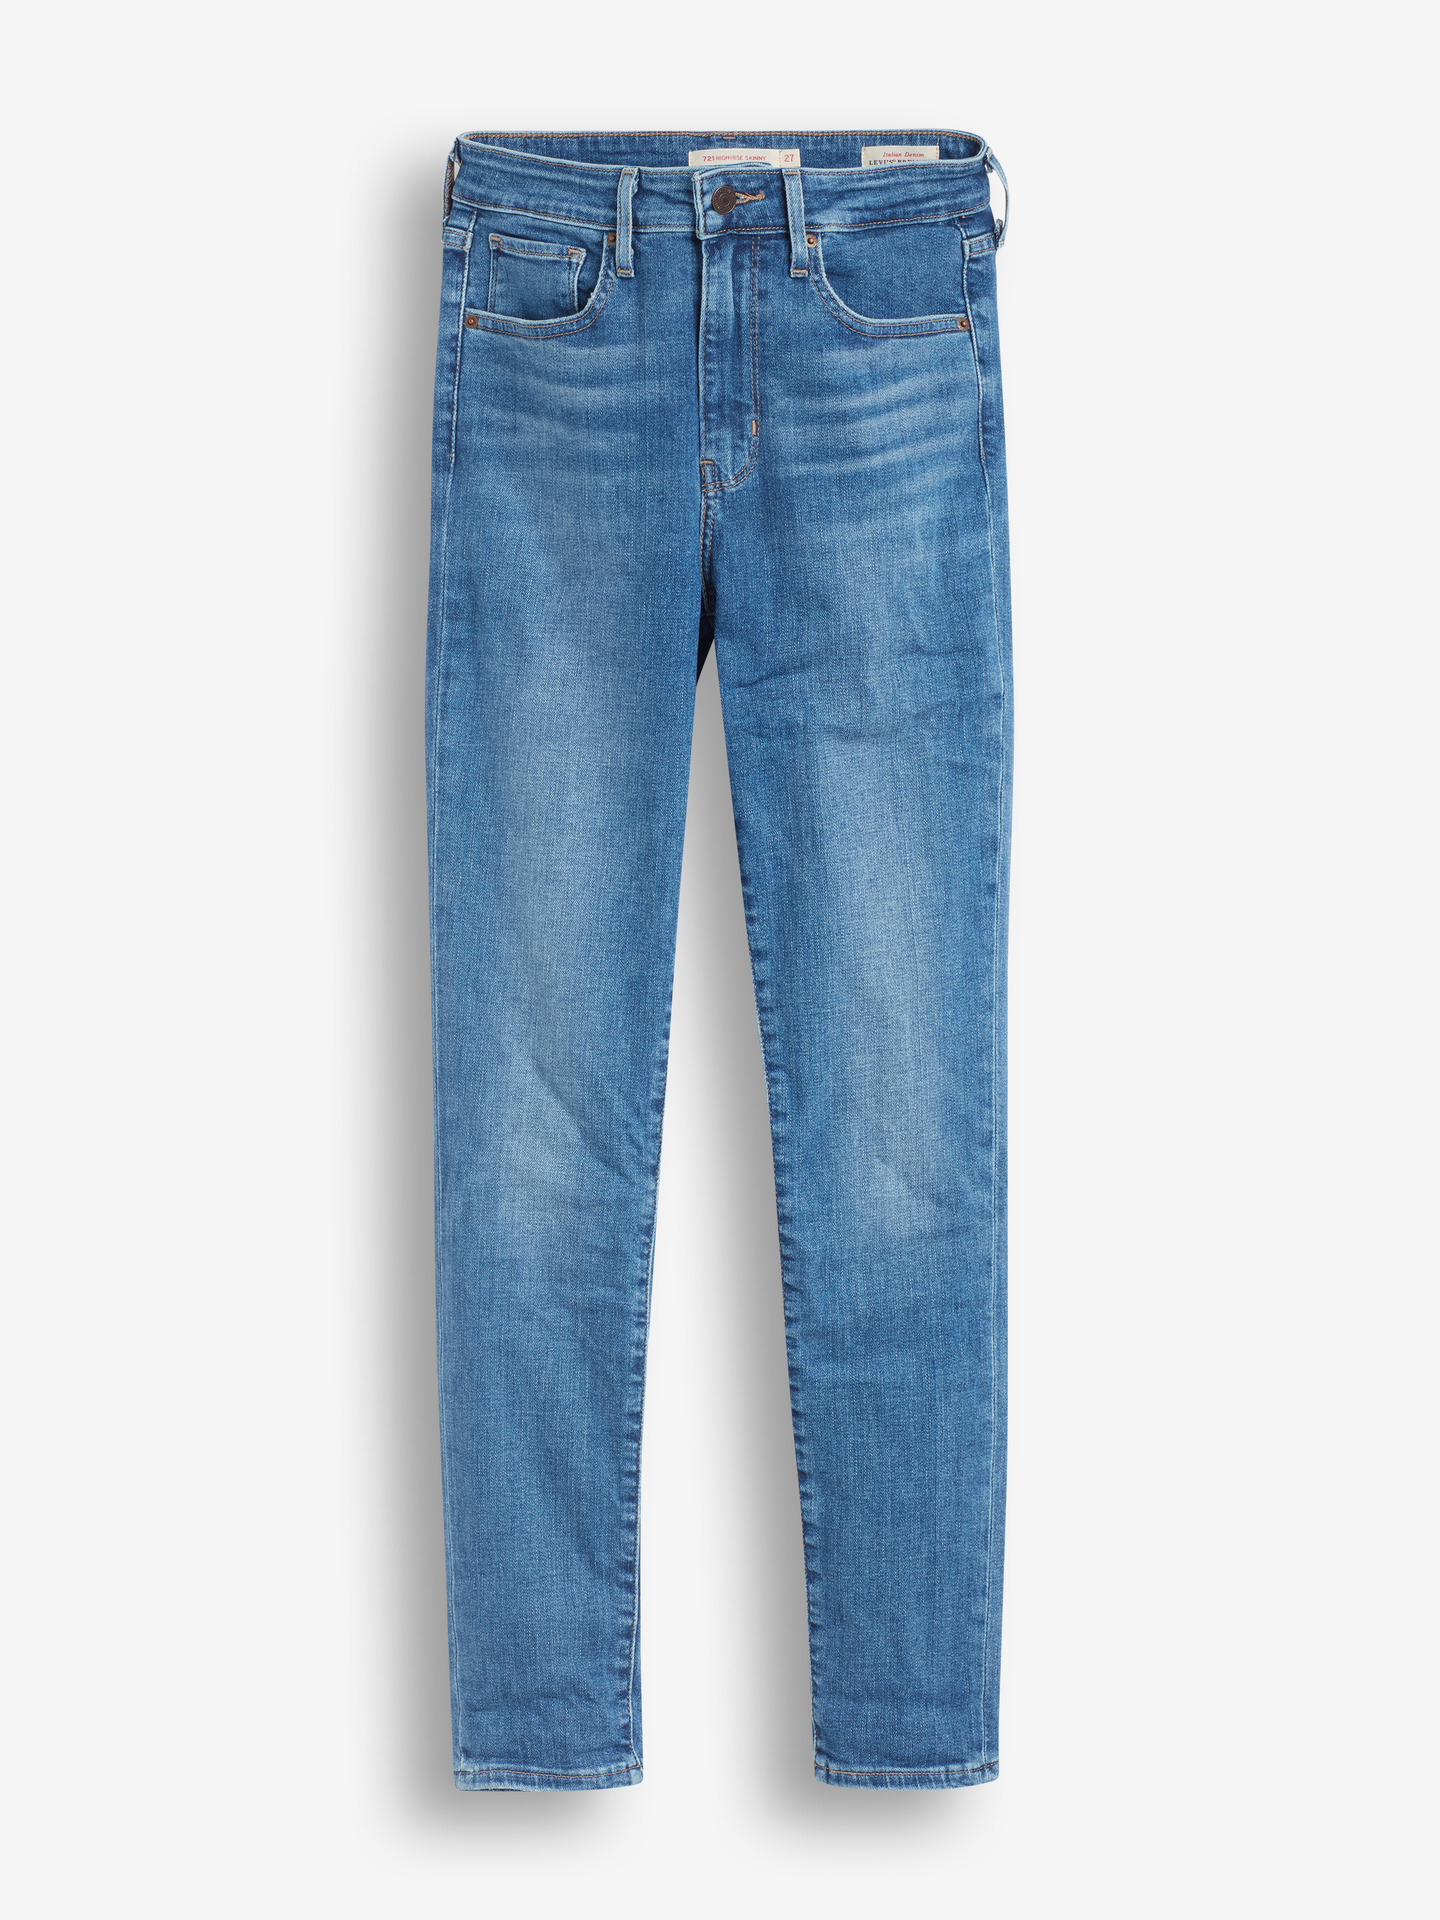 721™ High Rise Skinny Jeans Levi's® (5)